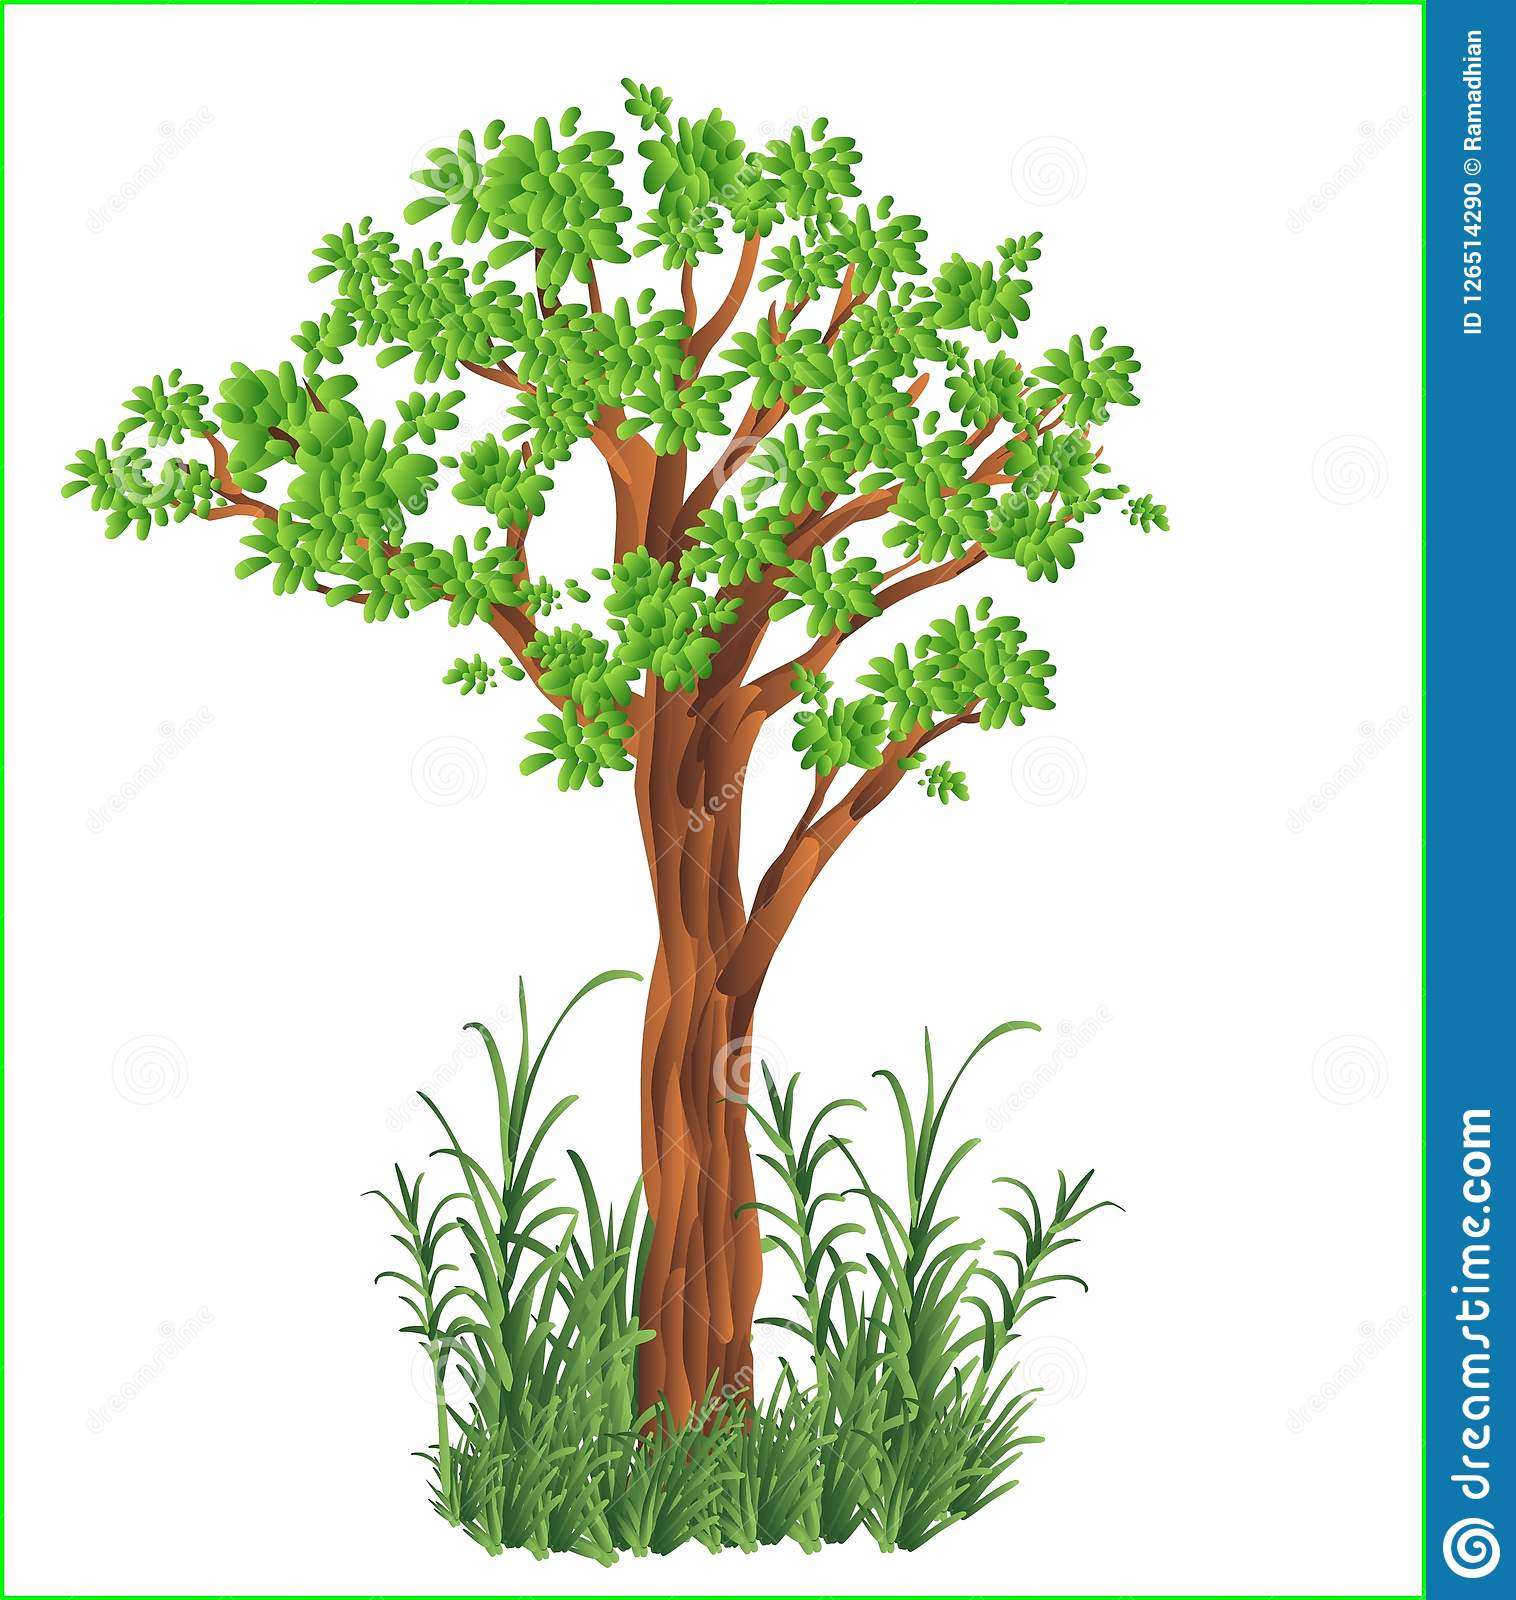 Vector Green Tree Grass Bushes Natural Fresh Garden Jungle Forest Stock Vector Illustration Of Nature Branches 126514290 Tree christmas for holiday, green pine with garland illustration. https www dreamstime com vector green tree grass bushes natural fresh garden jungle forest realistic cartoon clipart nature earth image126514290